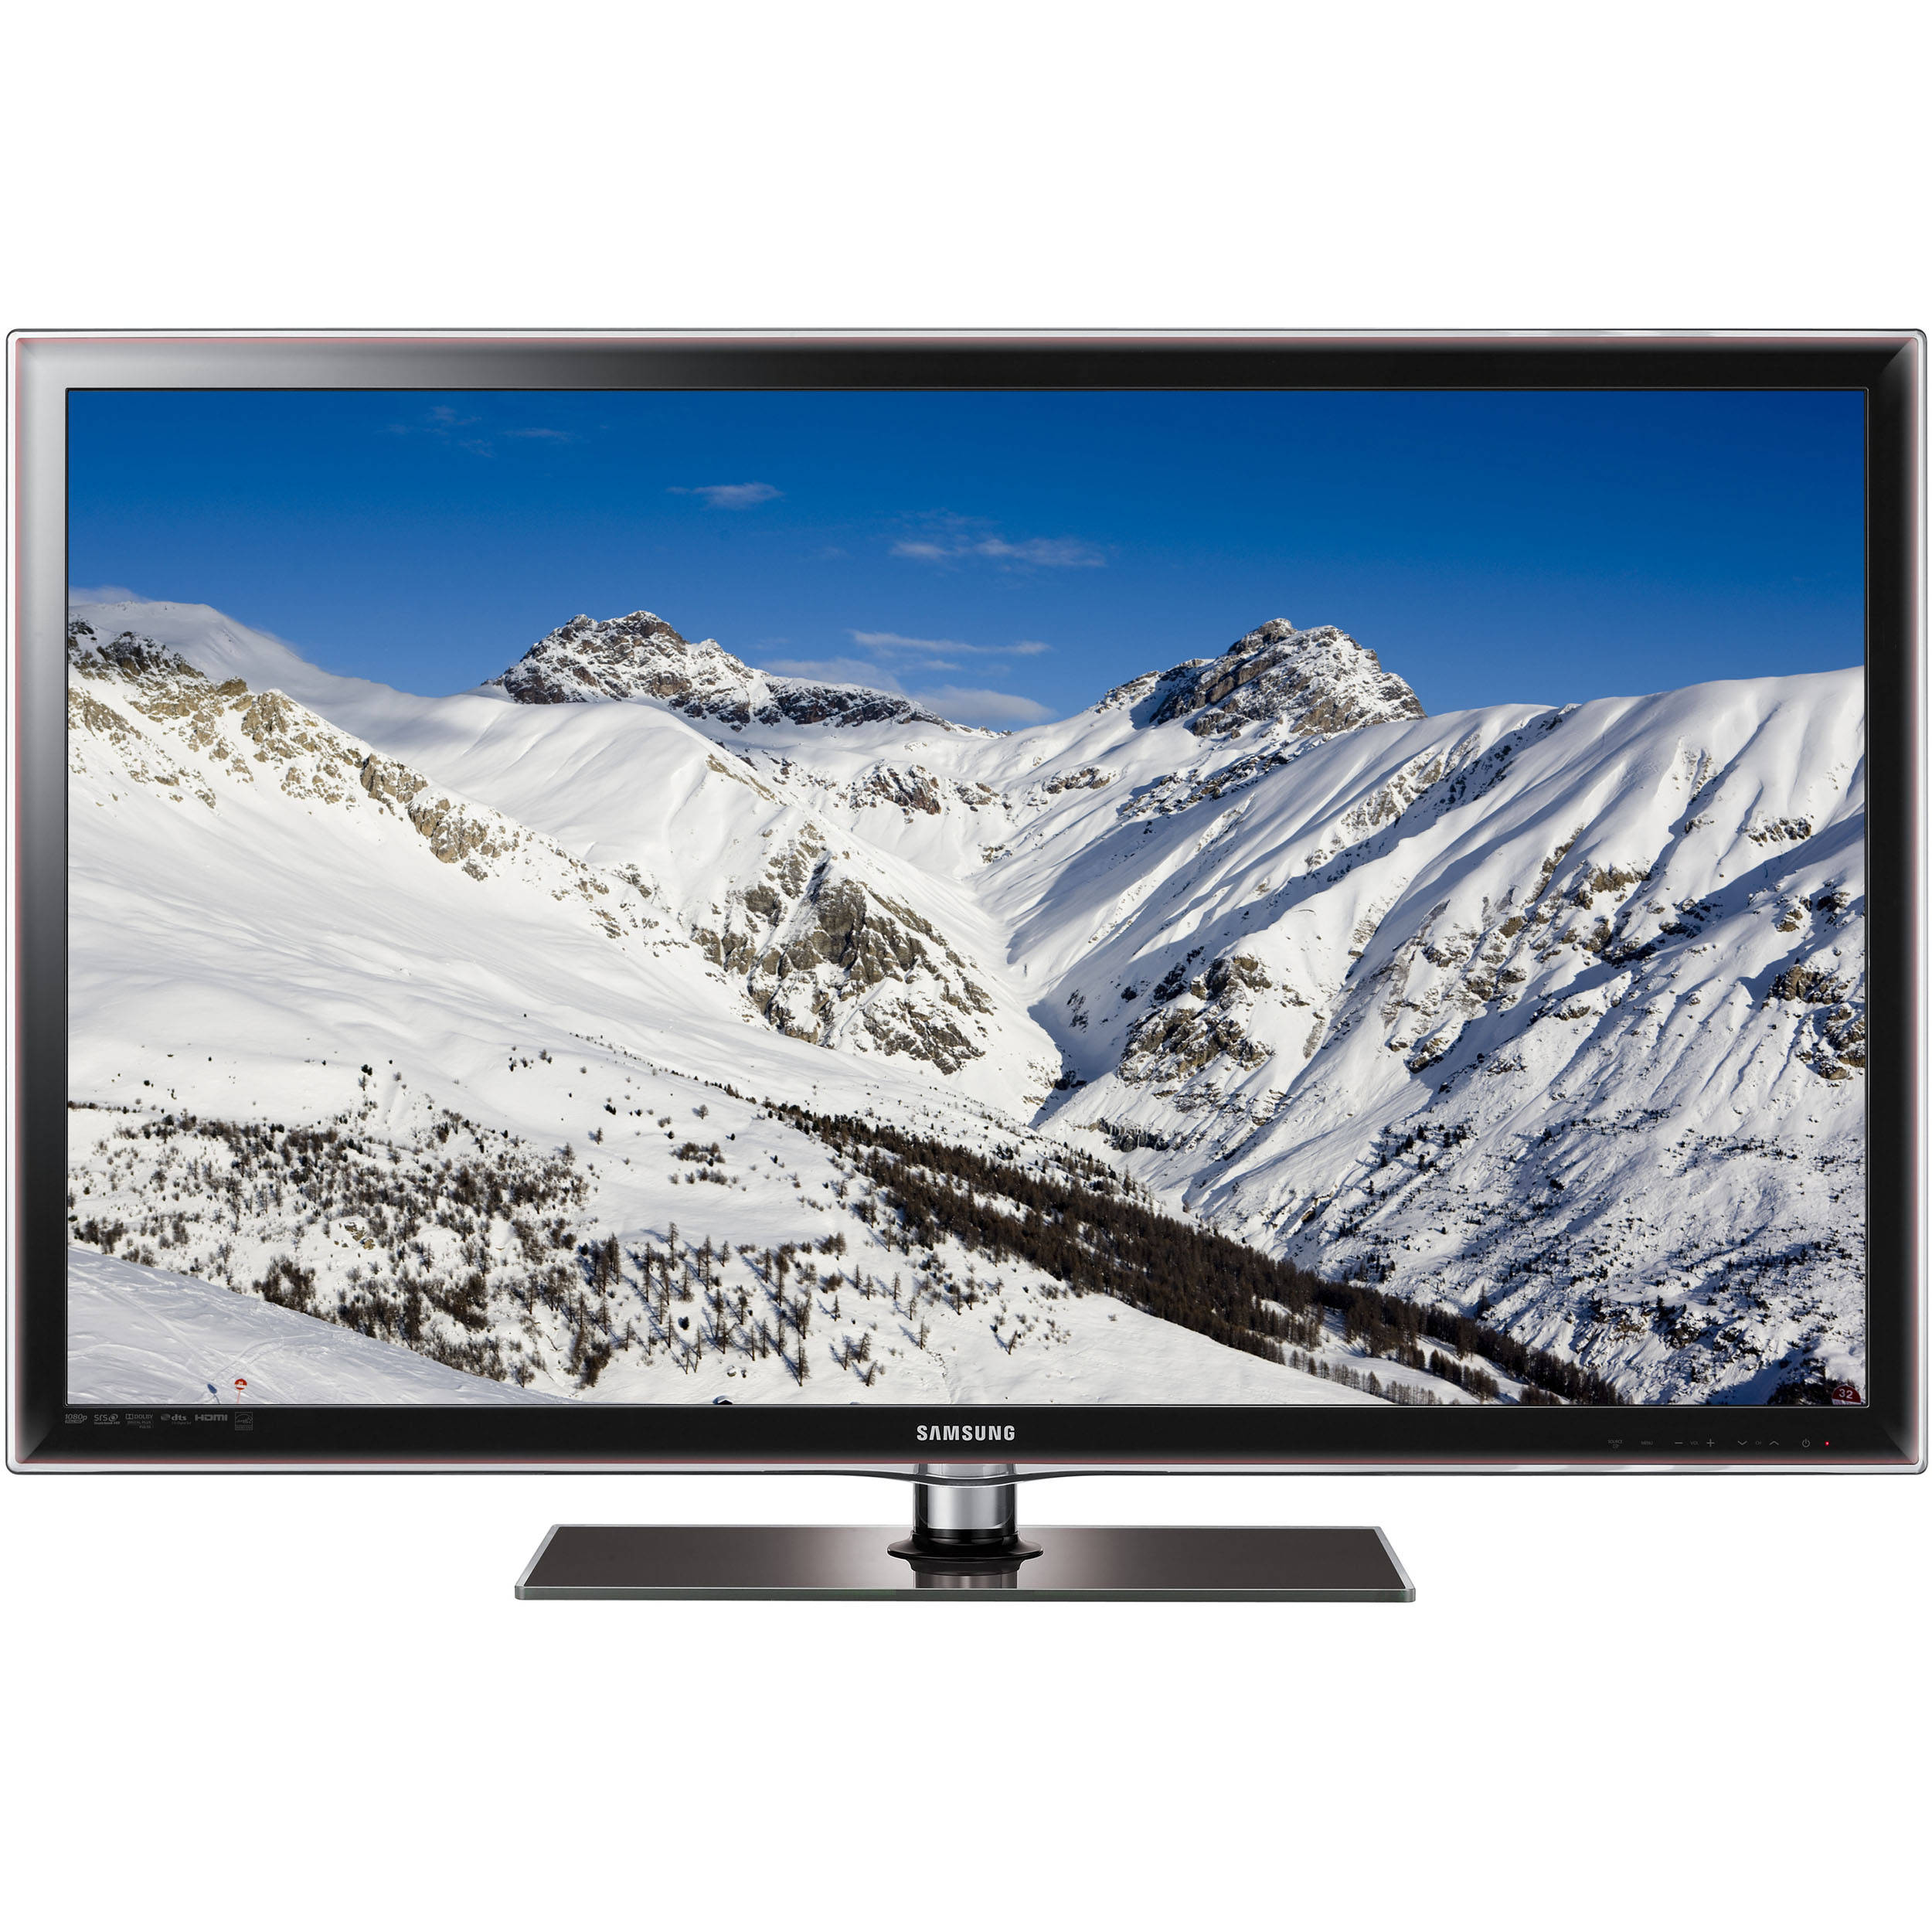 samsung ua40d6000 40 multisystem smart 3d led tv